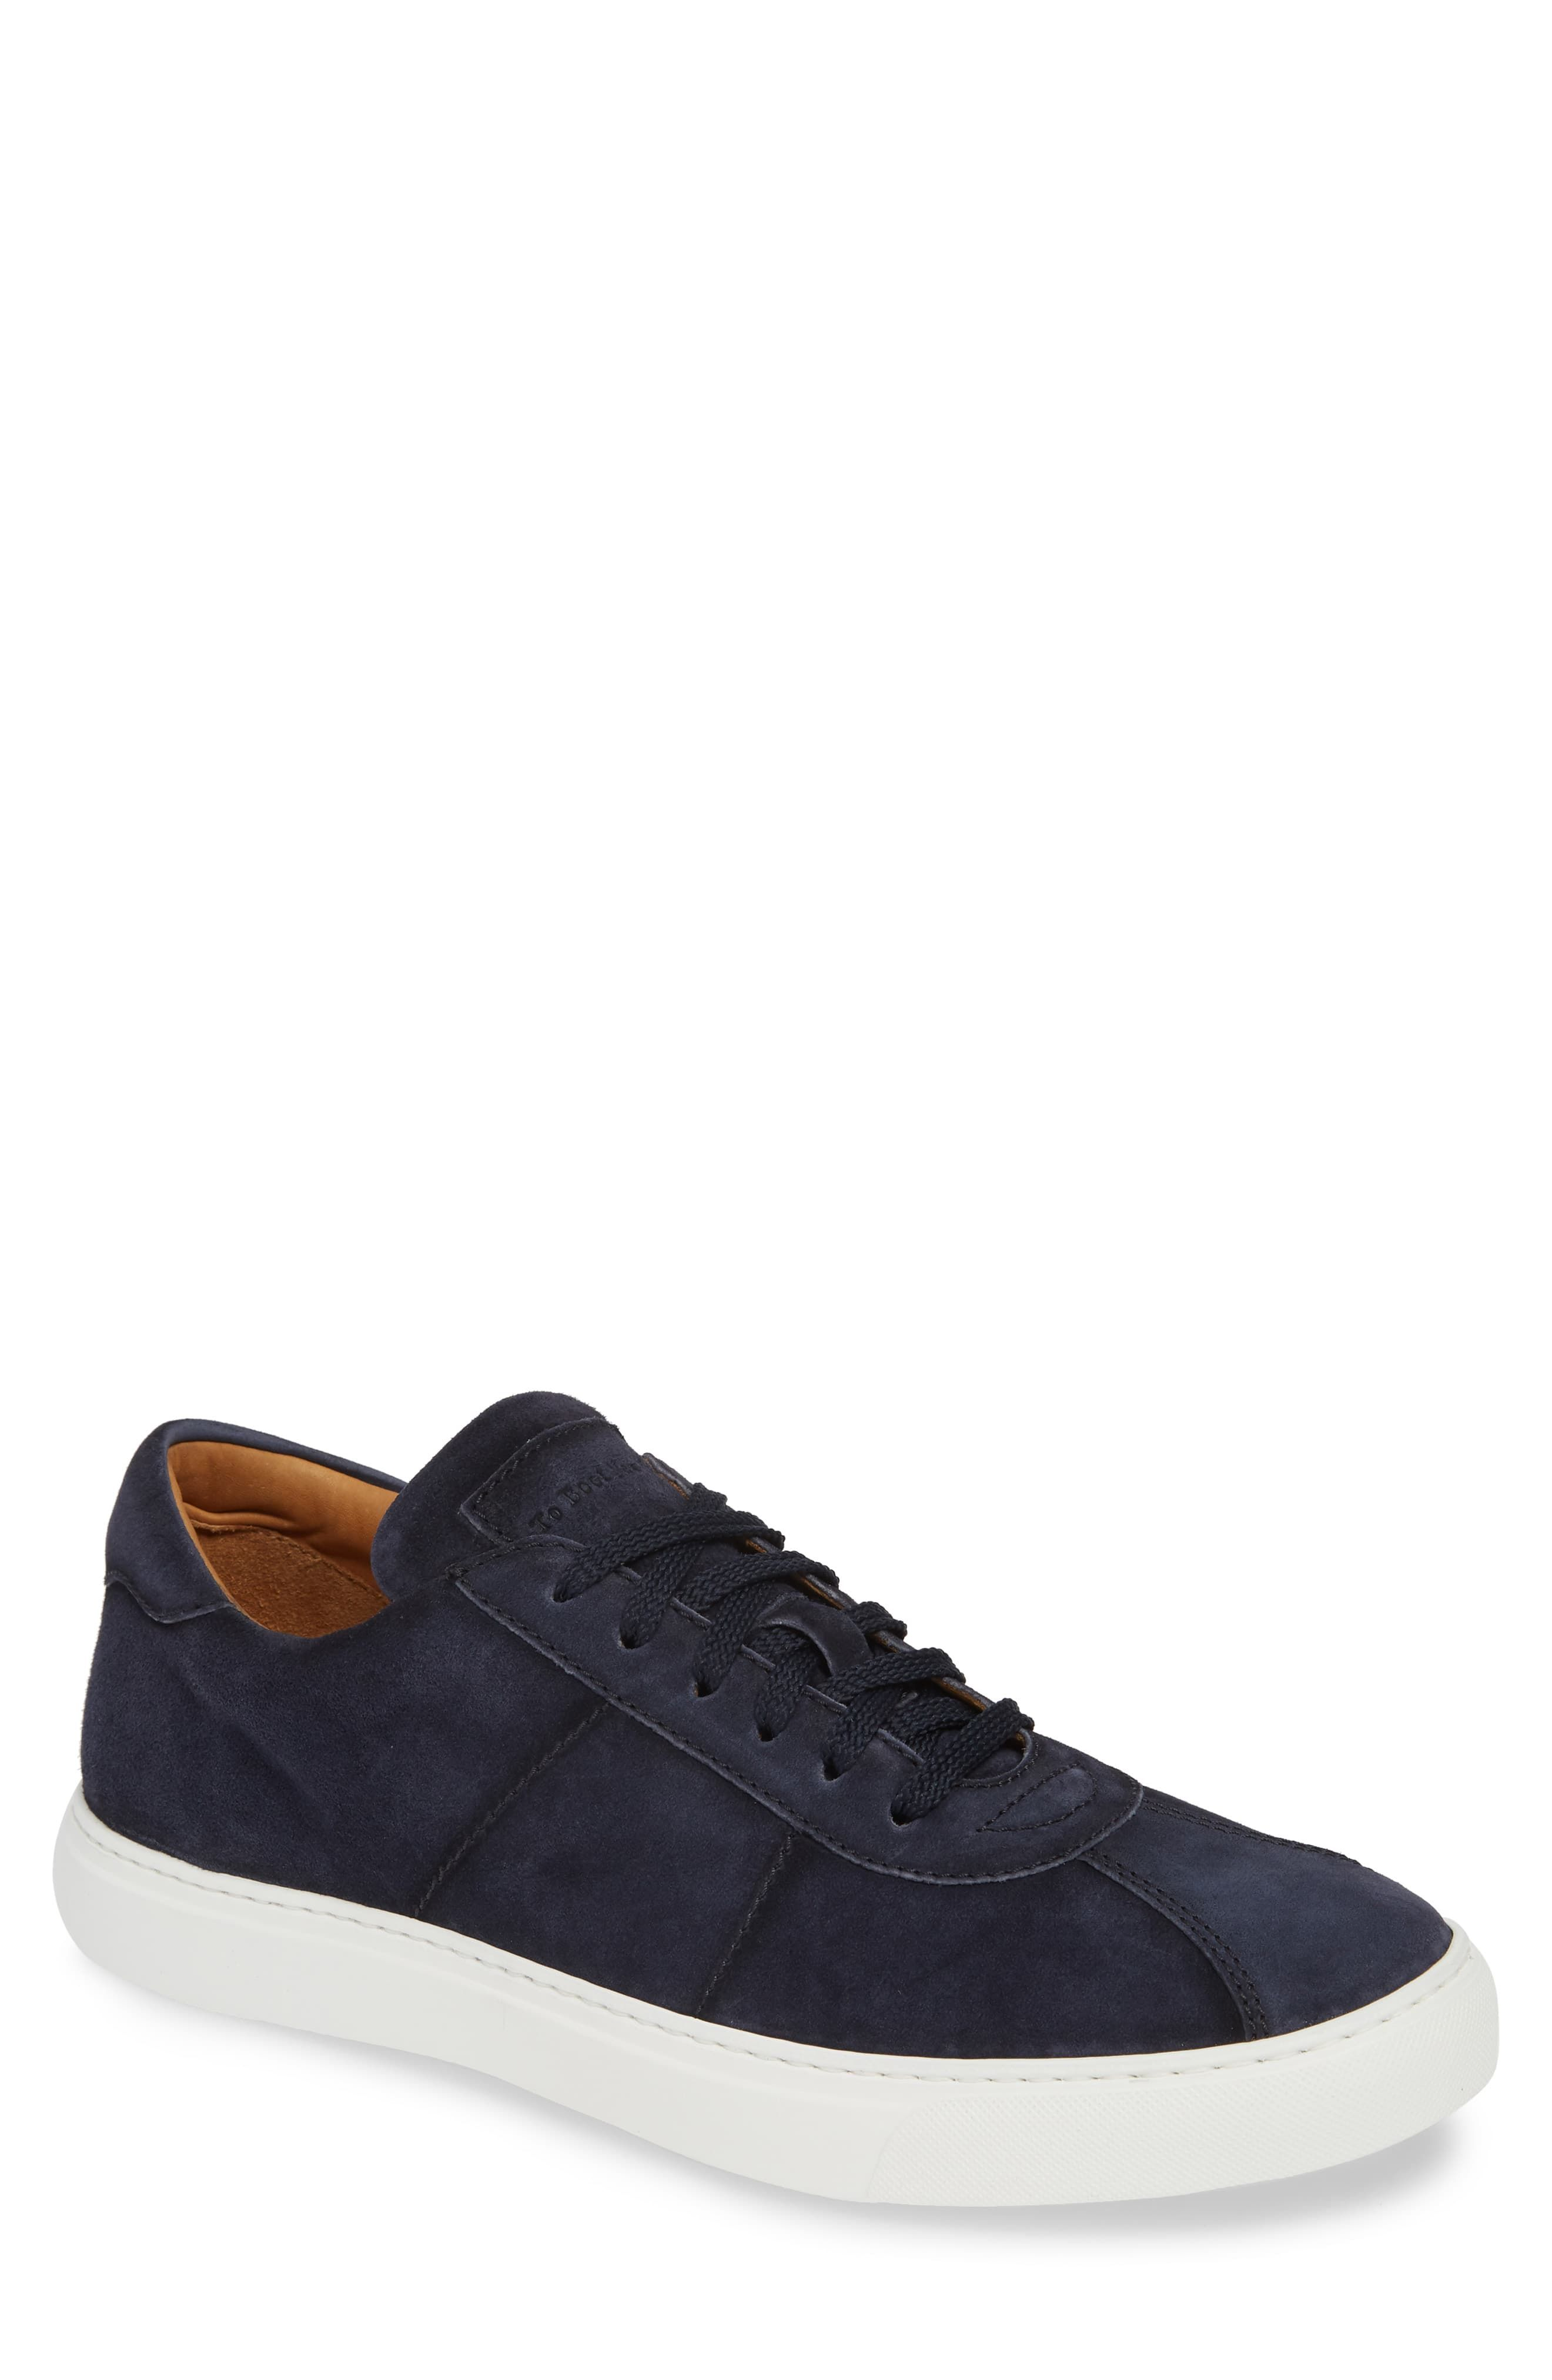 Men's To Boot New York Charger Low Top Sneaker, Size 10.5 M